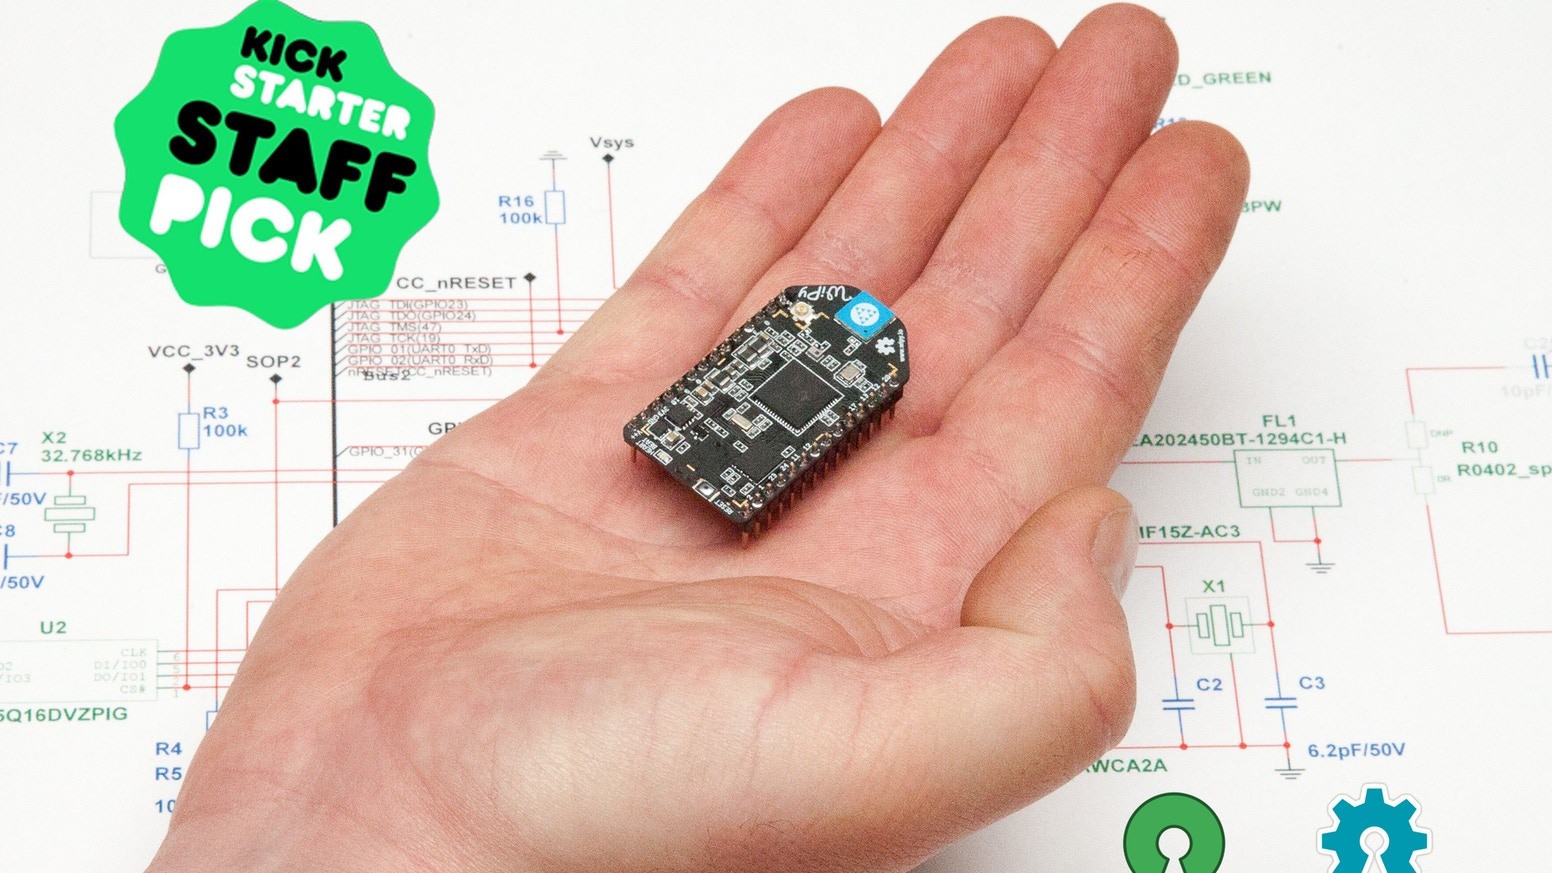 The IoT development platform that runs Python in real time, and features the perfect blend of power, friendliness and flexibility.